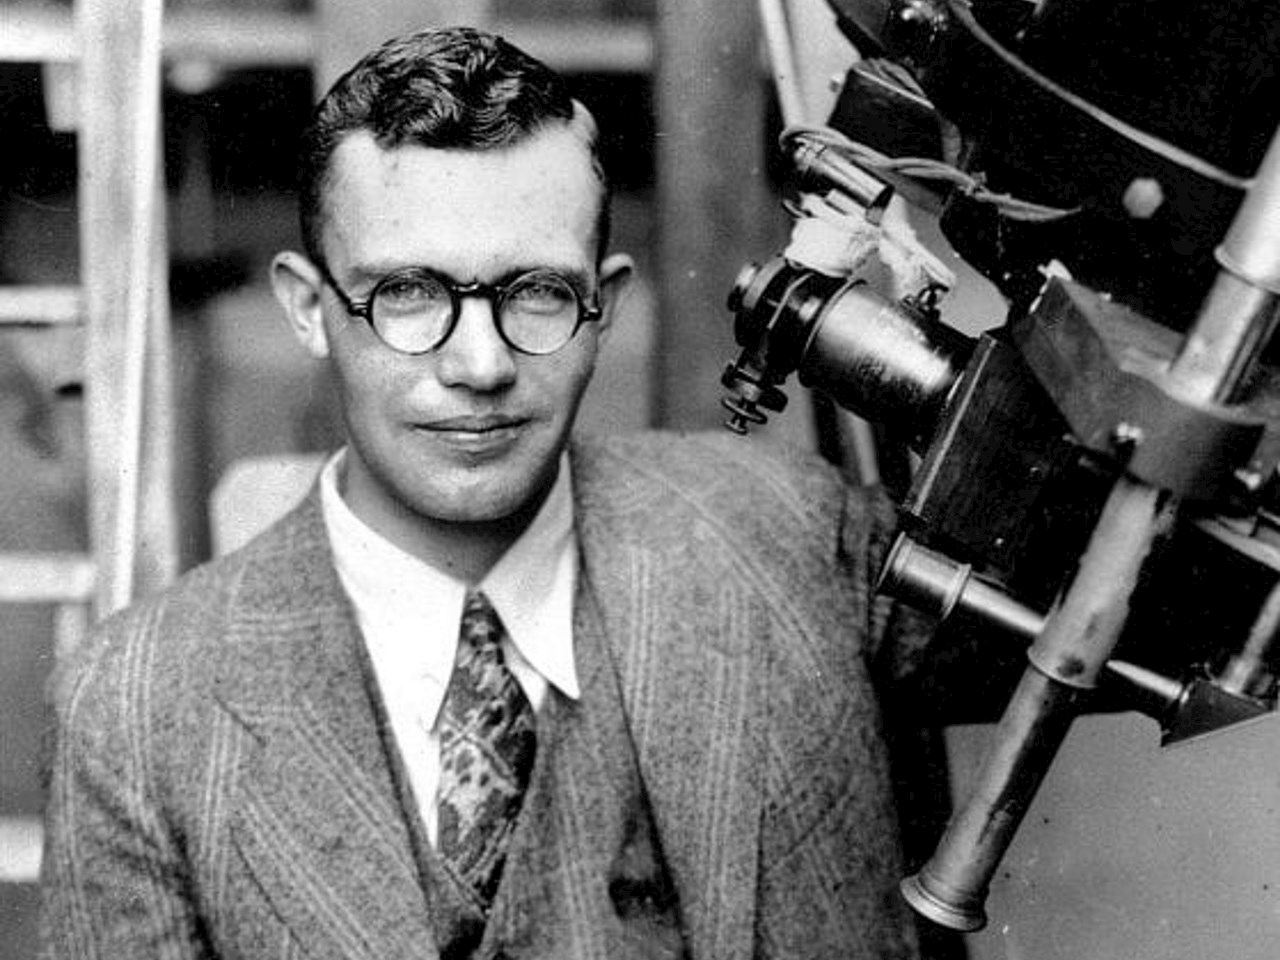 Clyde Tombaugh poses with the telescope through which he discovered the Pluto